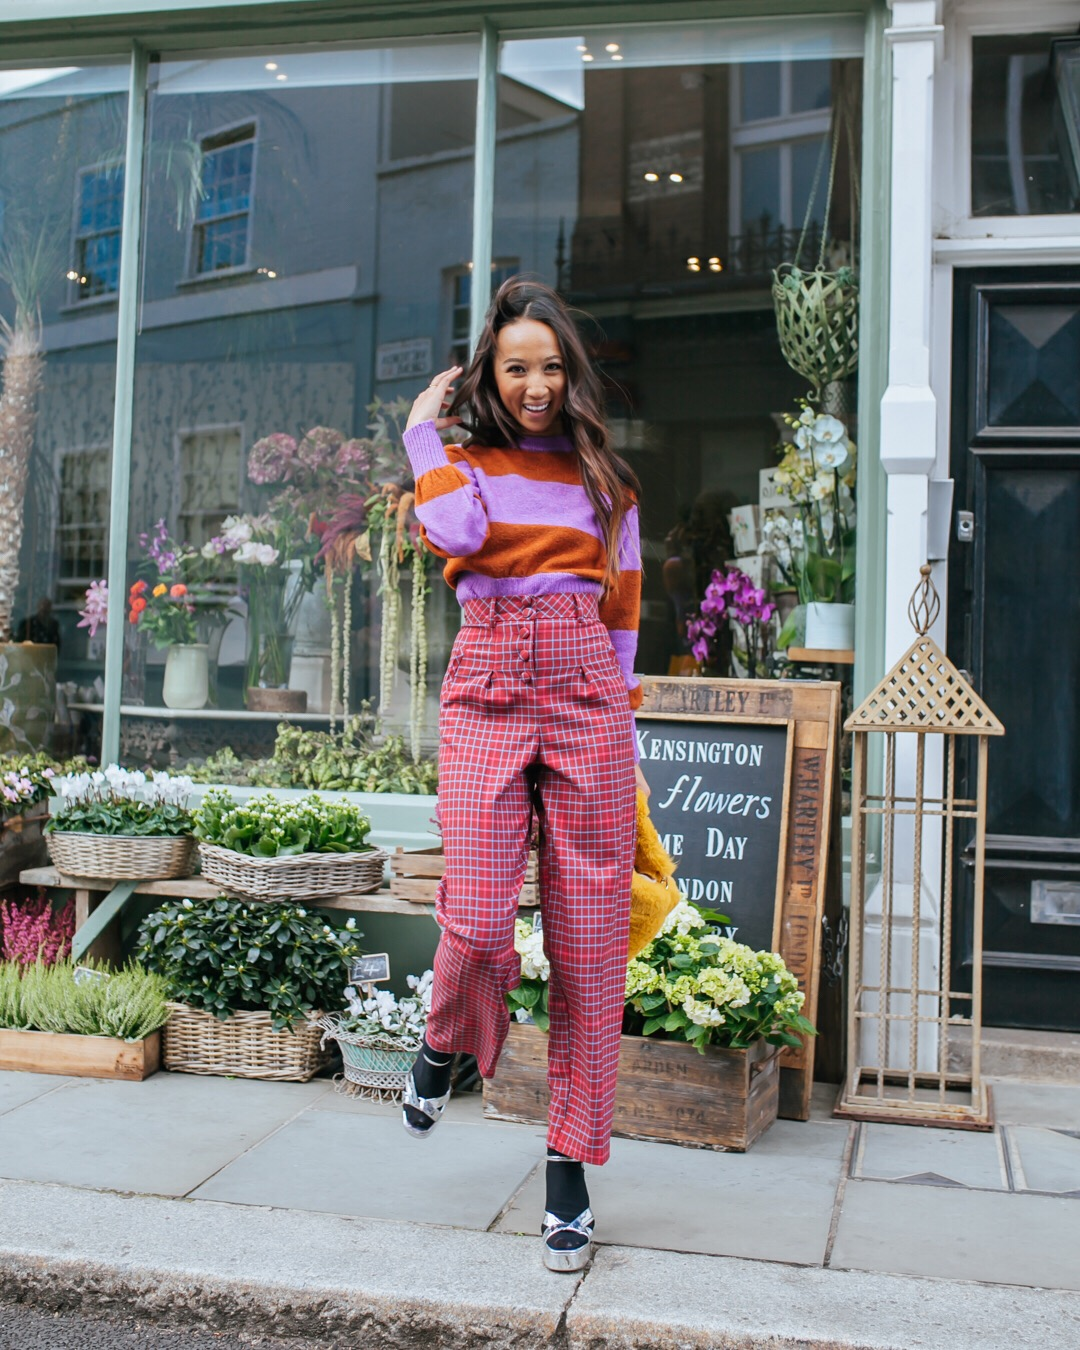 how do iembrace this style? - With a sweater tucked right in.Easy to tame standout trousers with an everyday knit, and tuck it in to temper the volume.